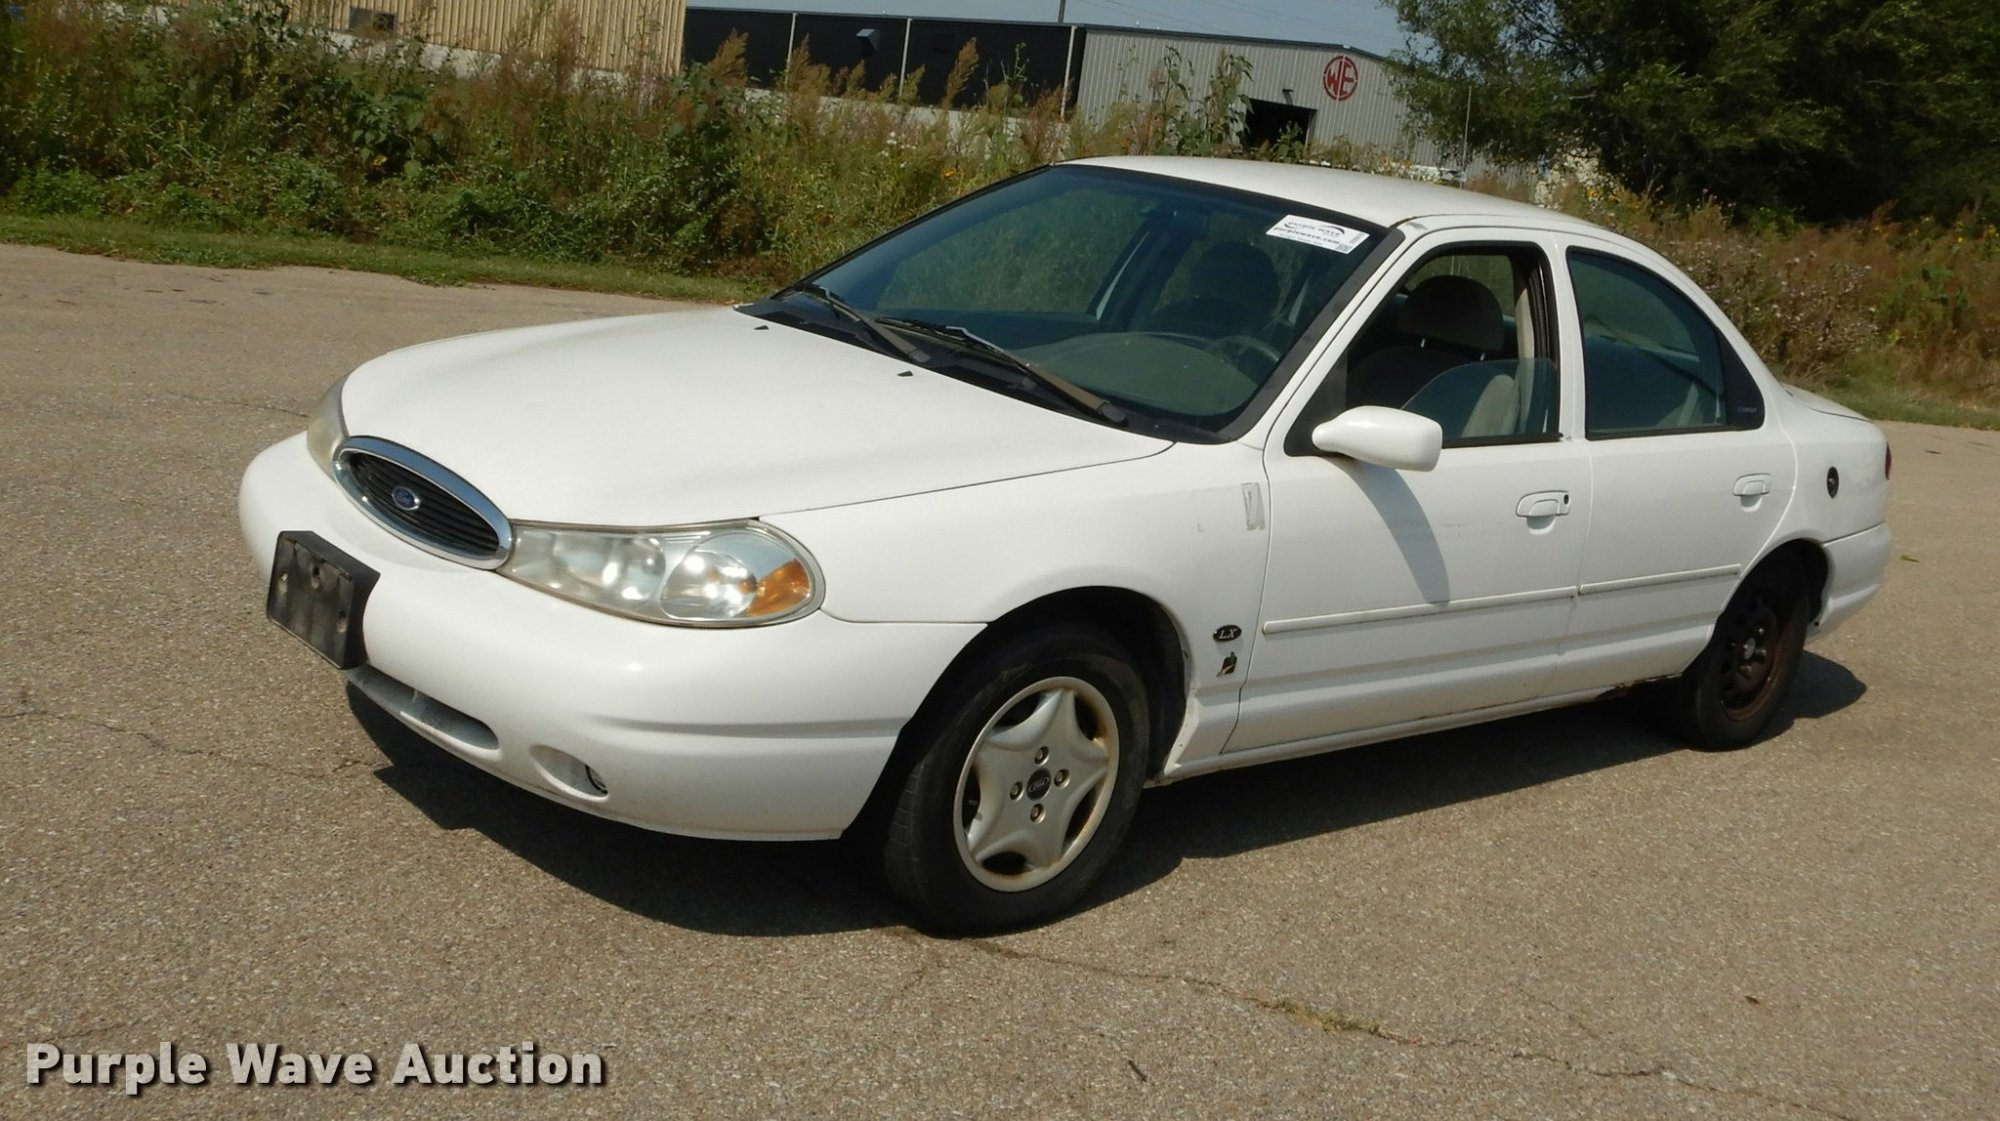 hight resolution of dd0819 image for item dd0819 1999 ford contour lx